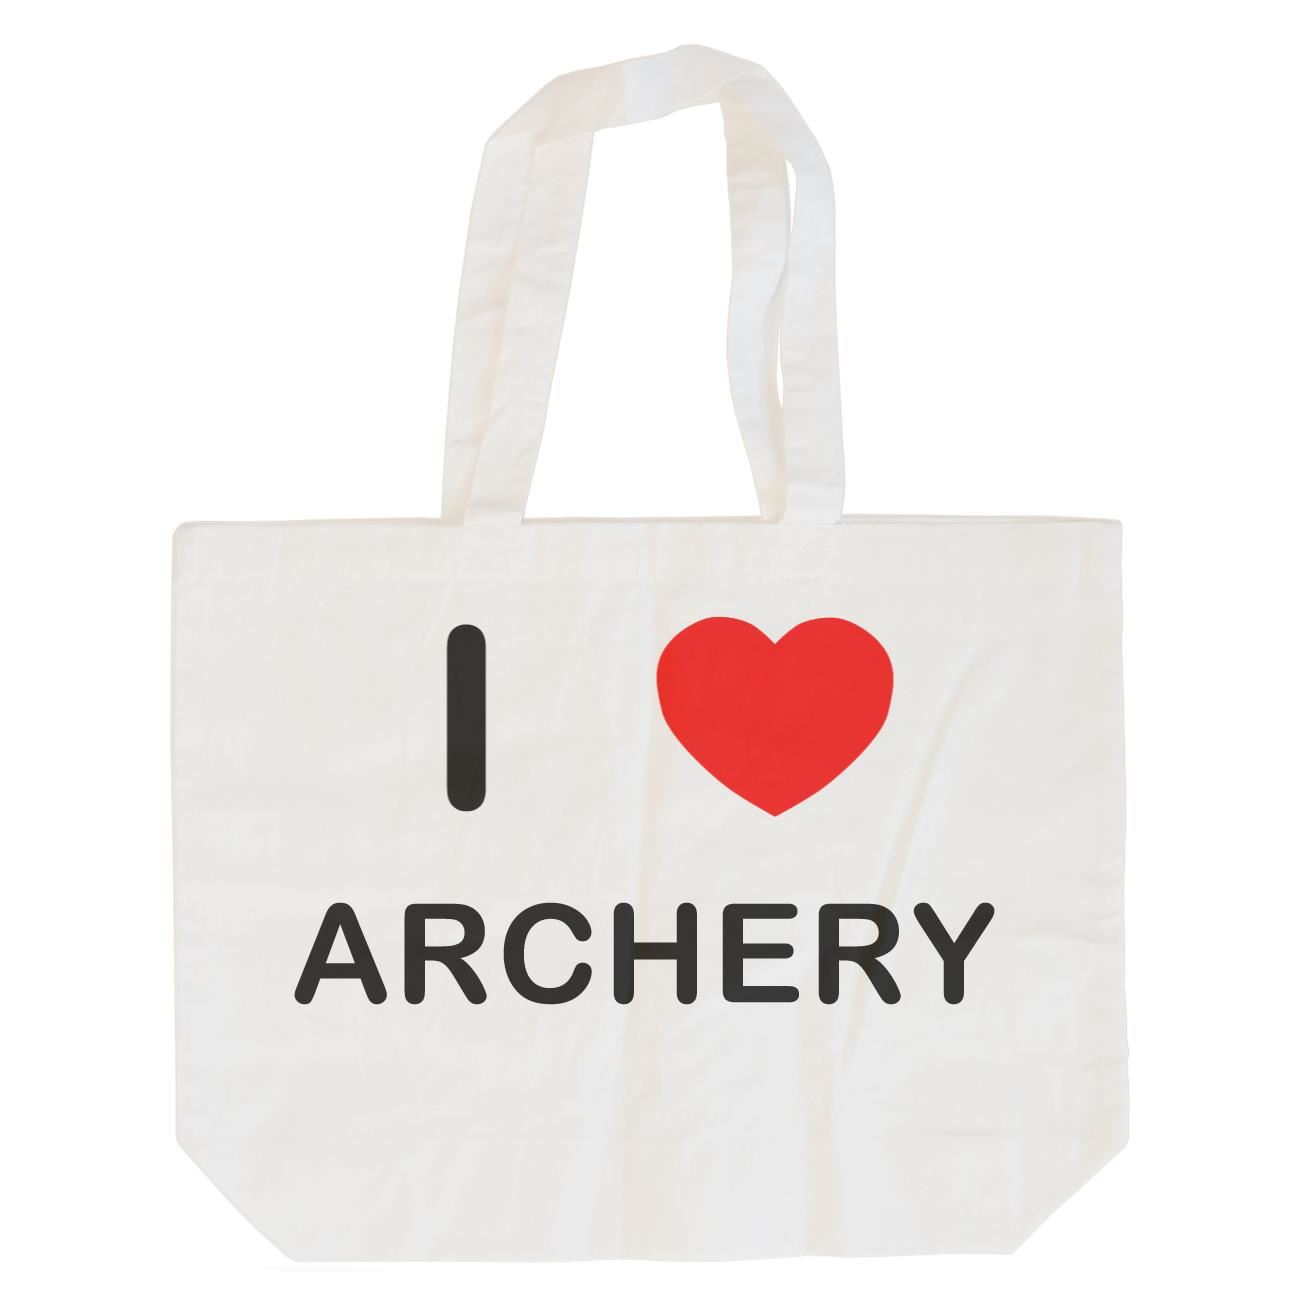 I Love Archery - Cotton Bag | Size choice Tote, Shopper or Sling